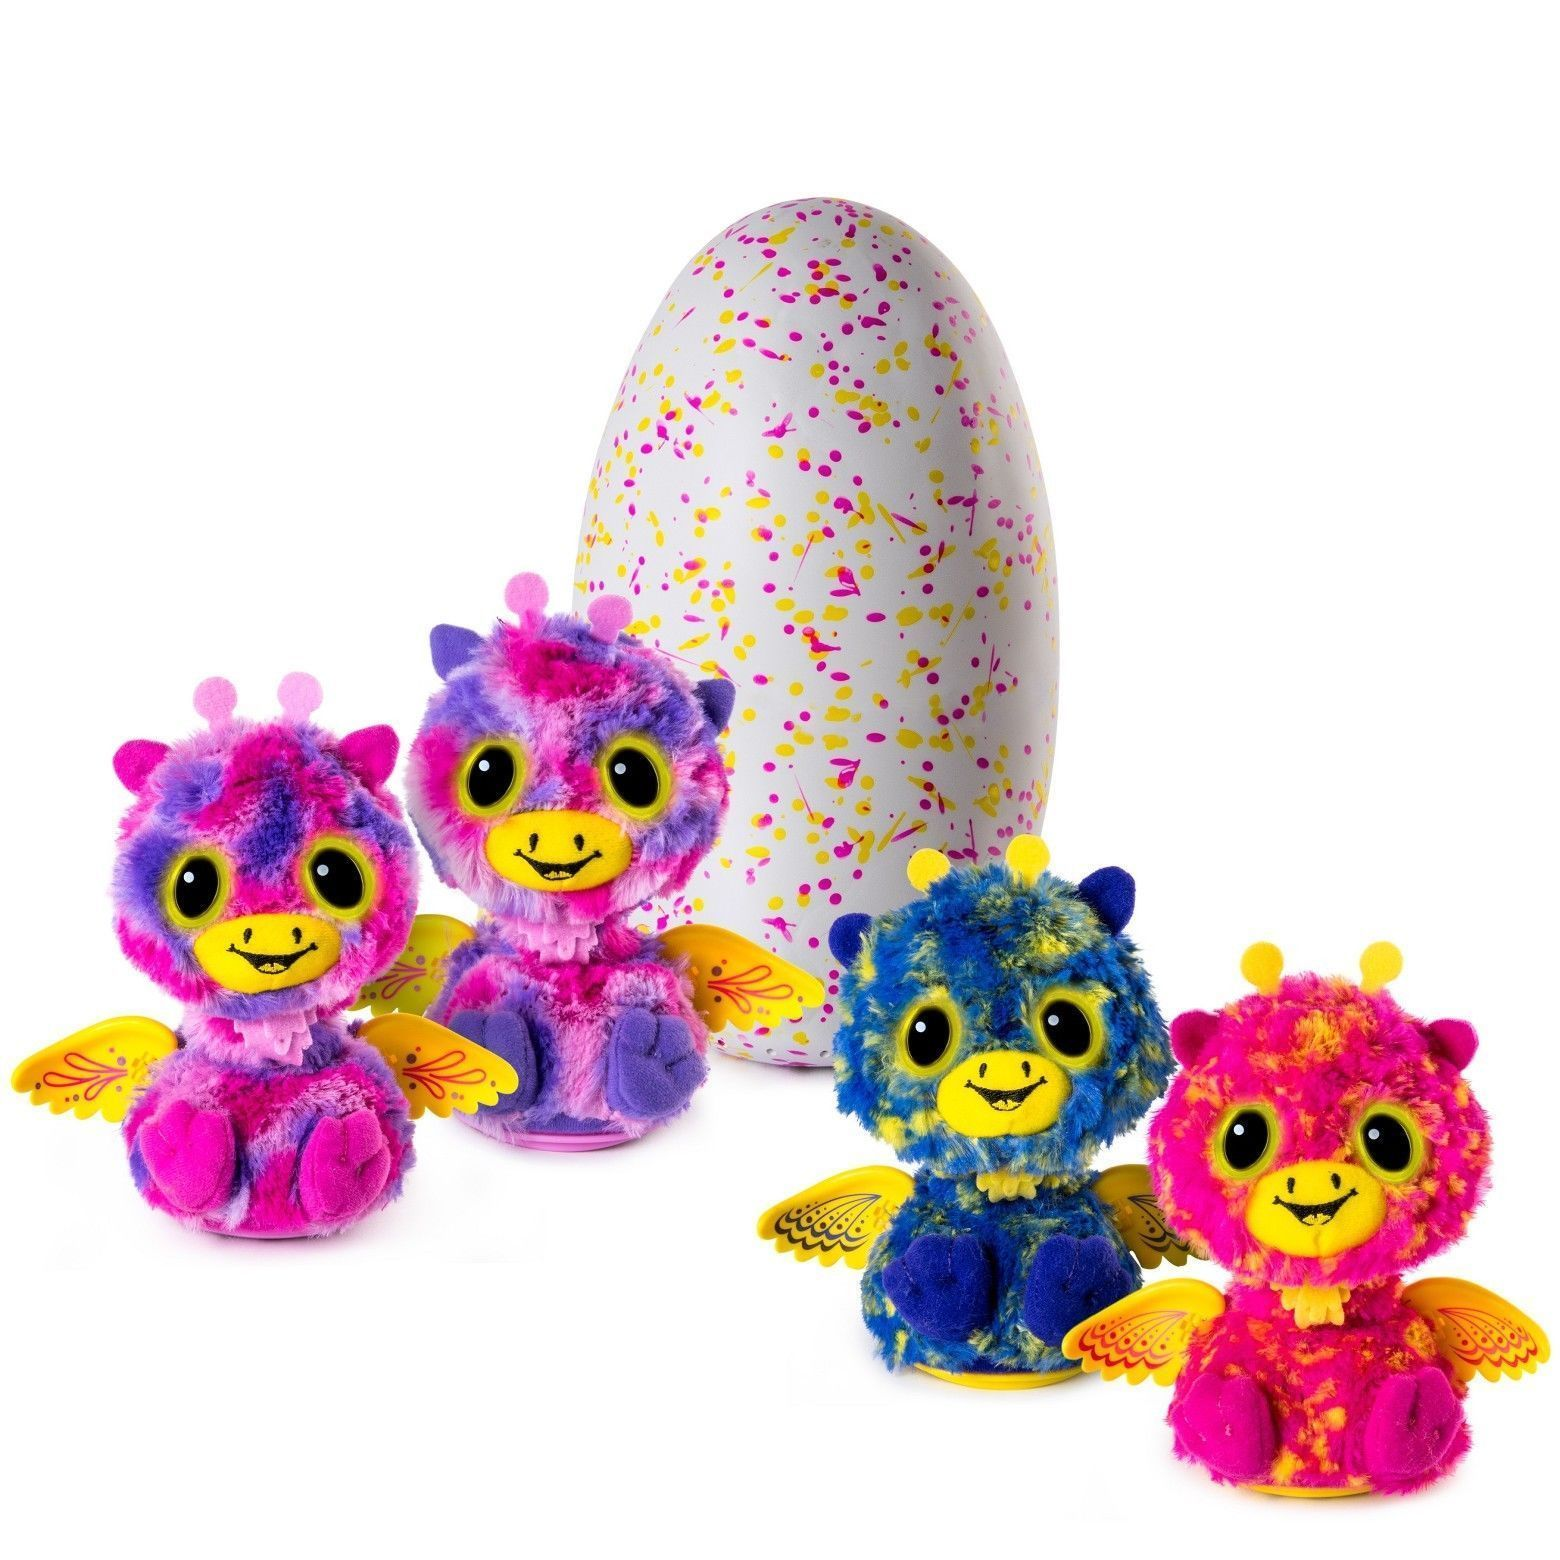 Hatchimals SURPRISE Giraven Hatching Egg By Spin Master with Twin Interactive